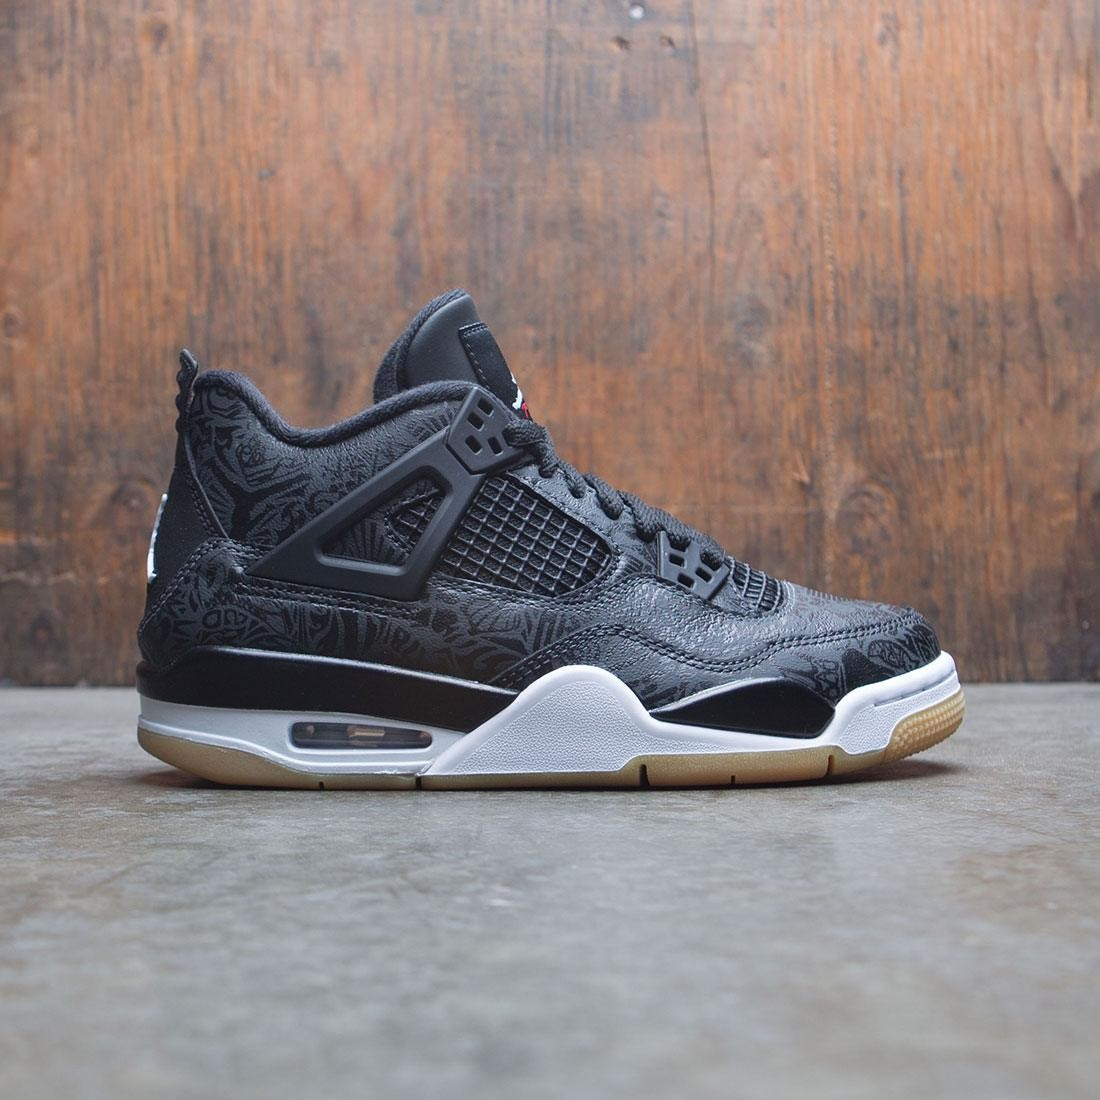 sports shoes 103dd cbae8 jordan big kids air jordan 4 retro se gs black white gum light brown